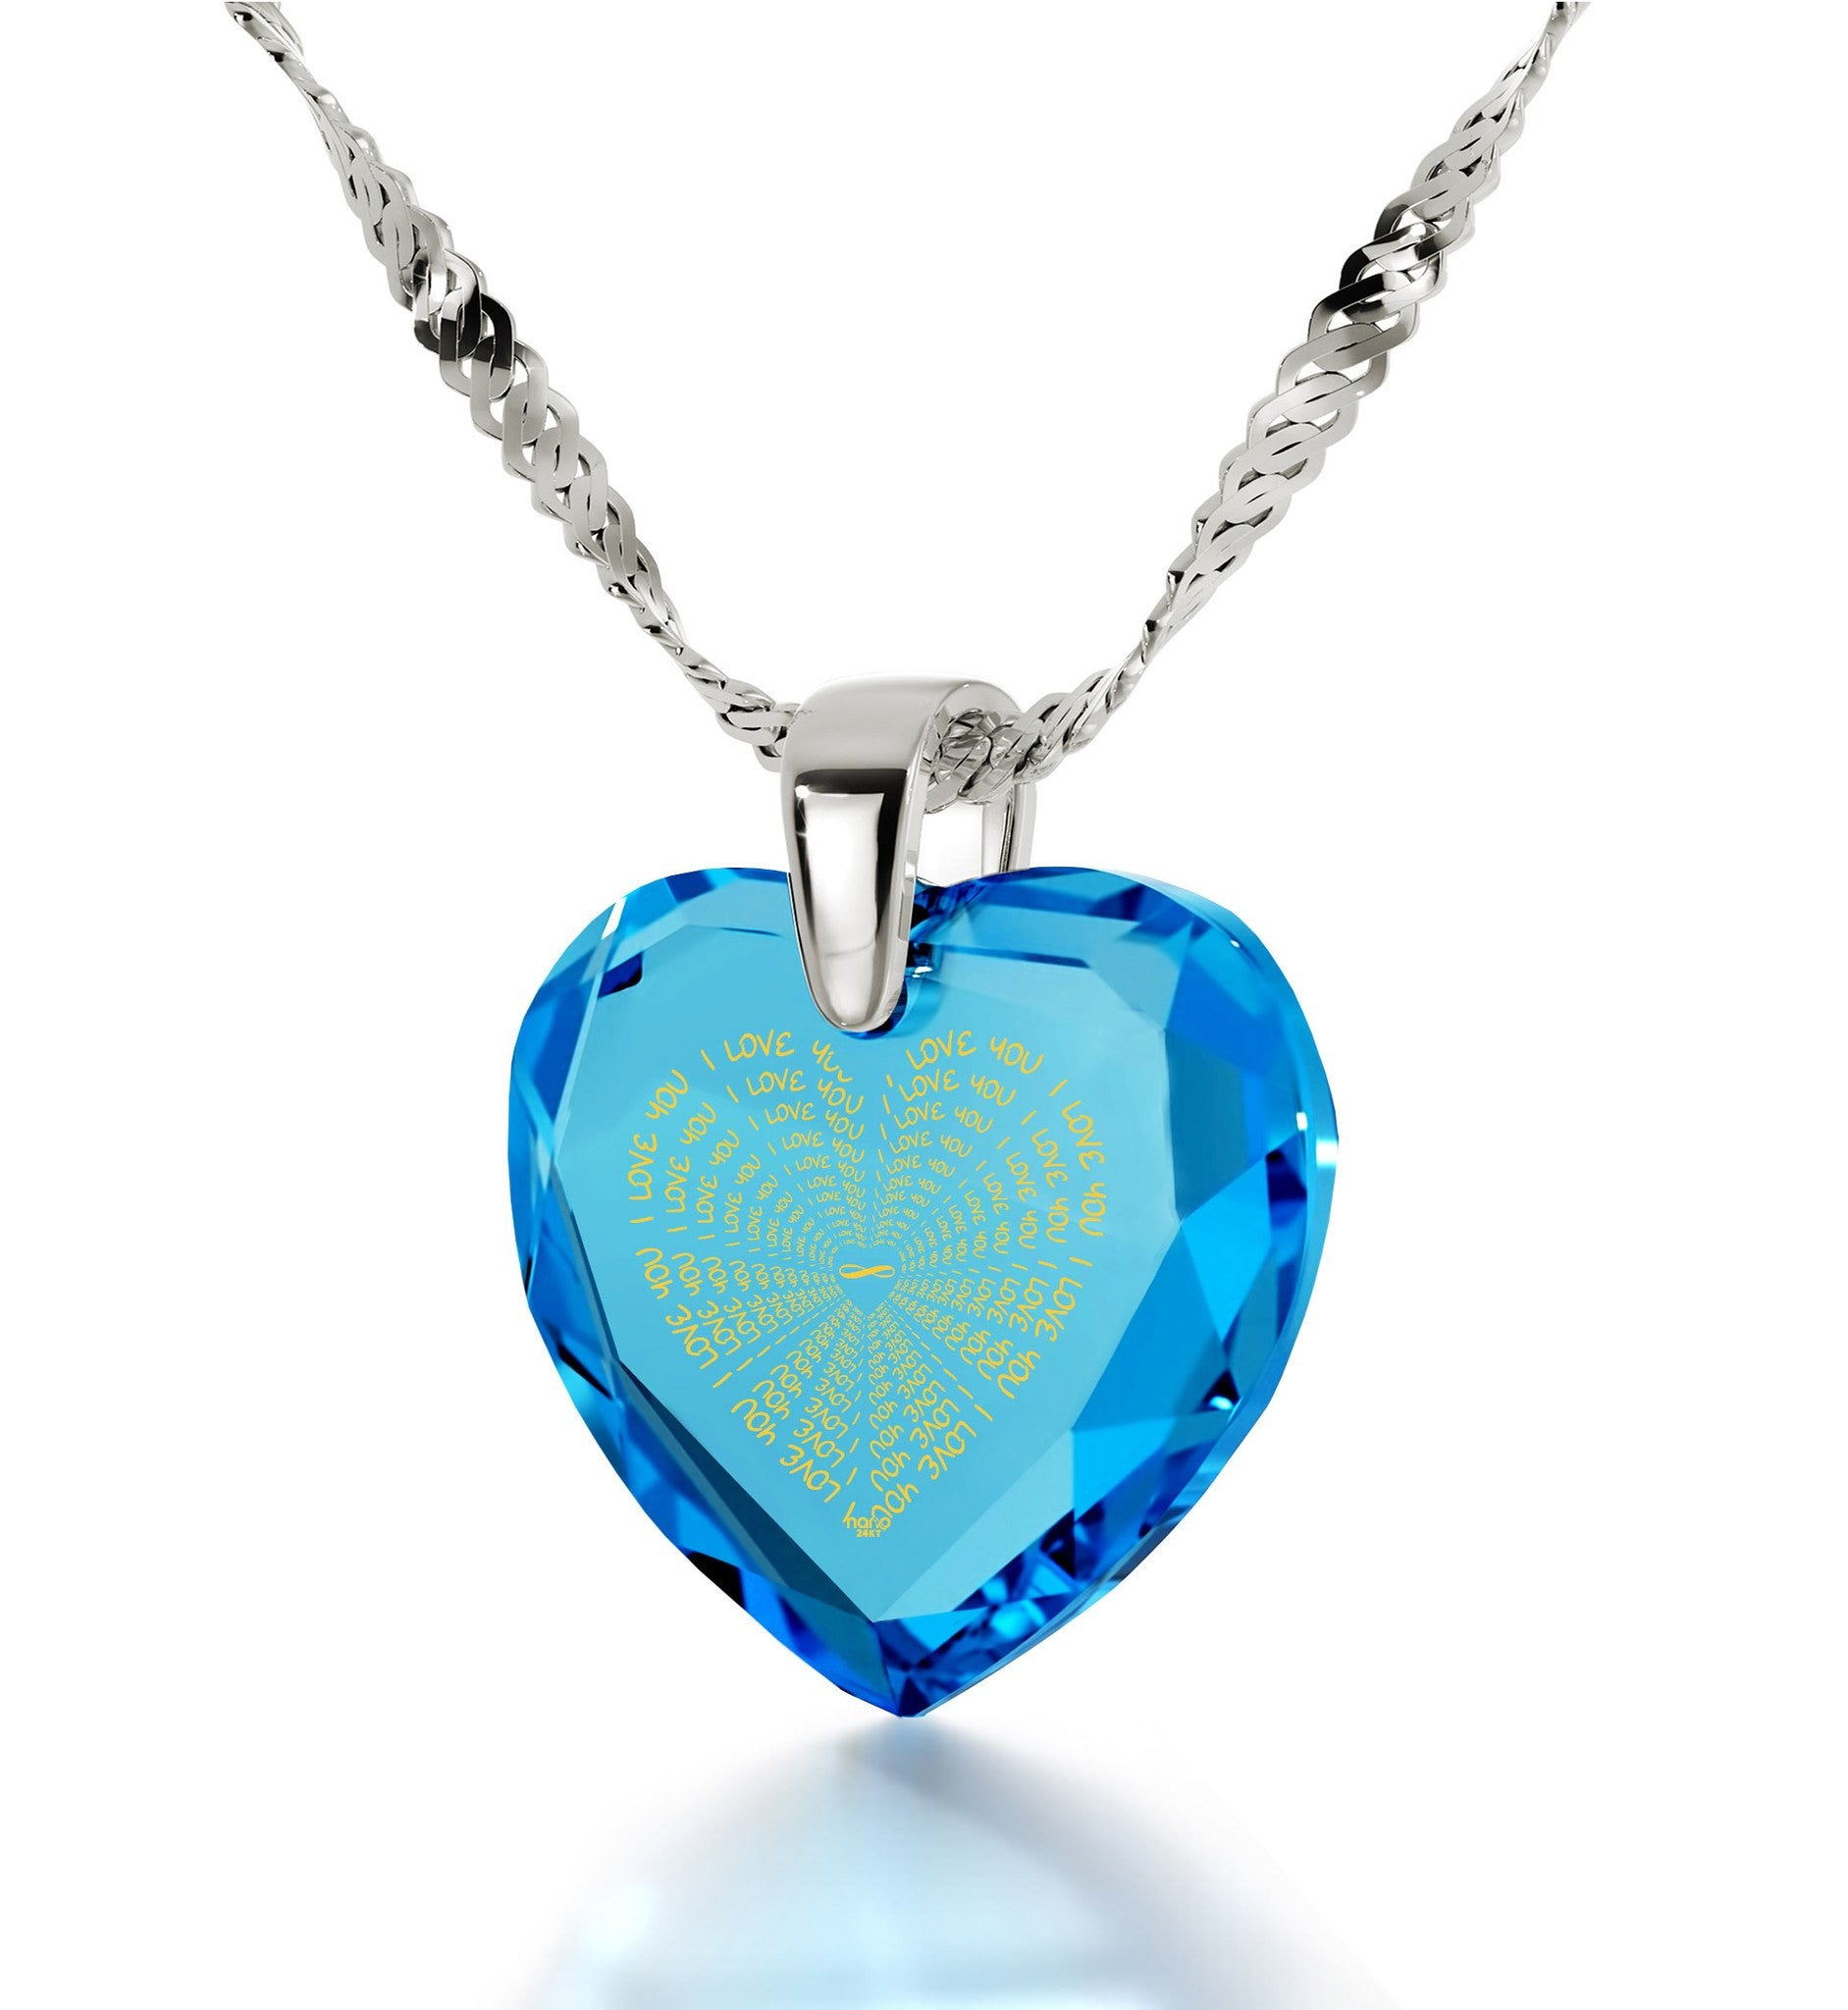 Love Necklace, 24k Gold Imprint, Turquoise CZ Jewelry, Christmas Gift For Her, by Nano Jewelry